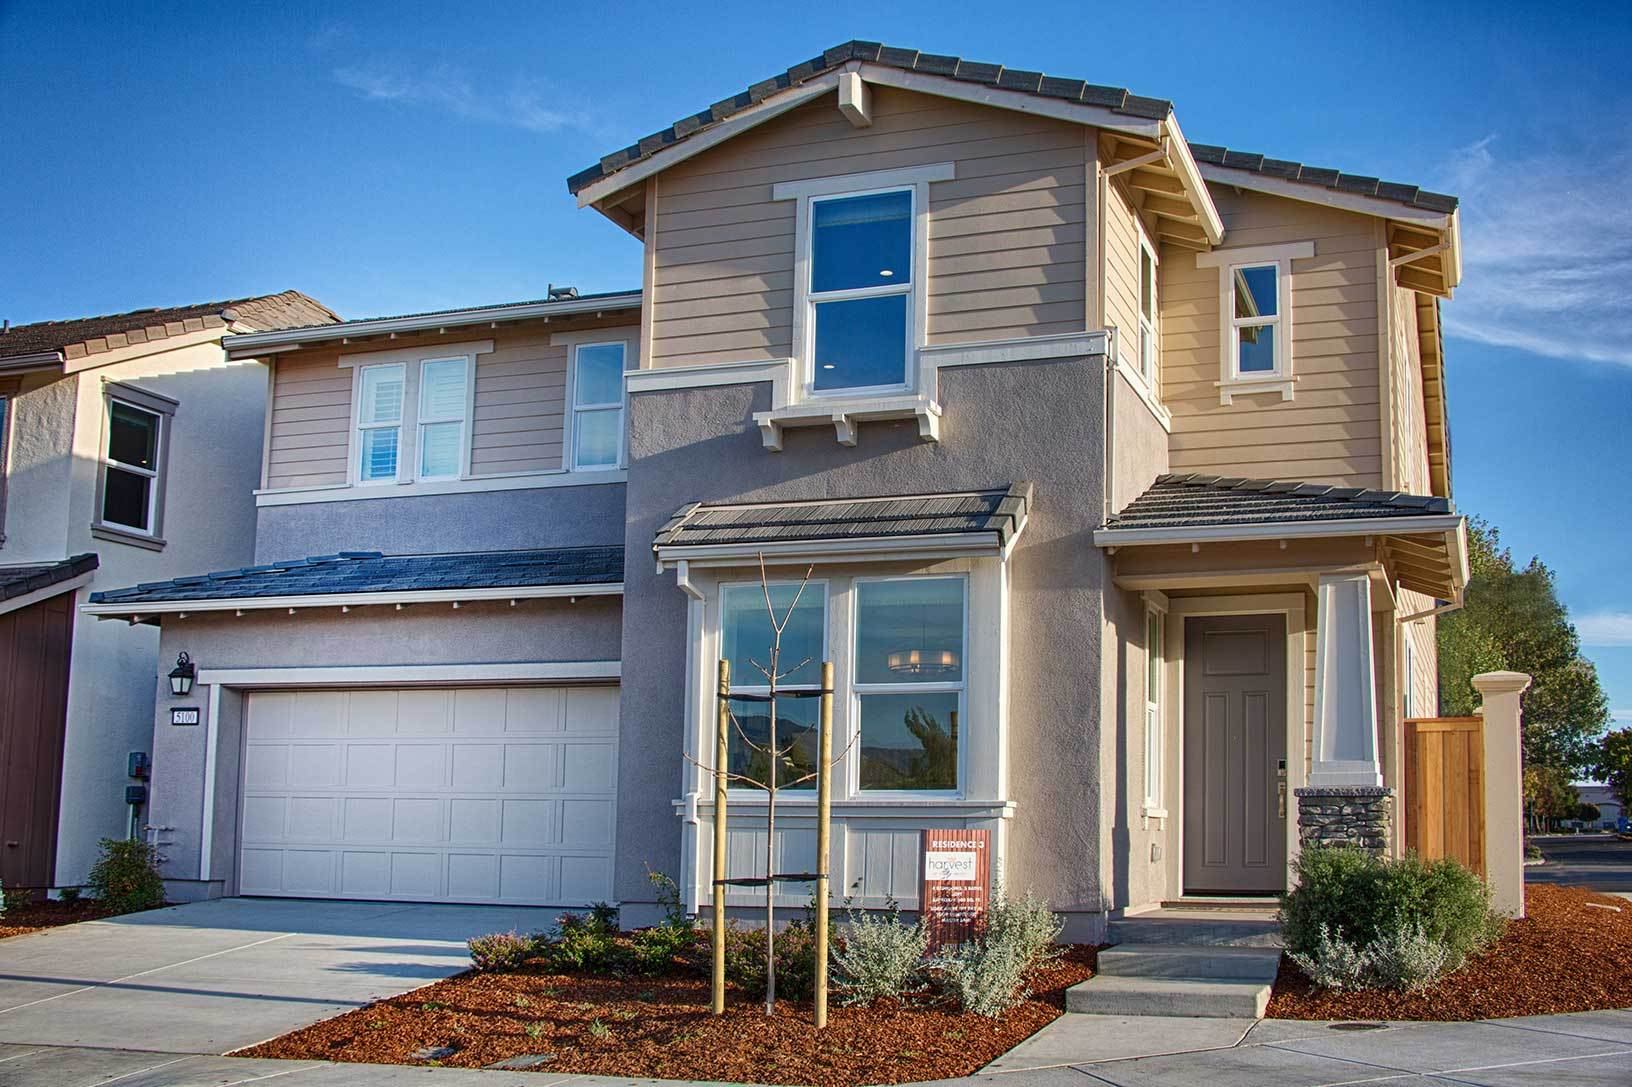 Single Family for Sale at Harvest At Green Valley - Residence 3 5120 Julia Berger Circle Fairfield, California 94534 United States